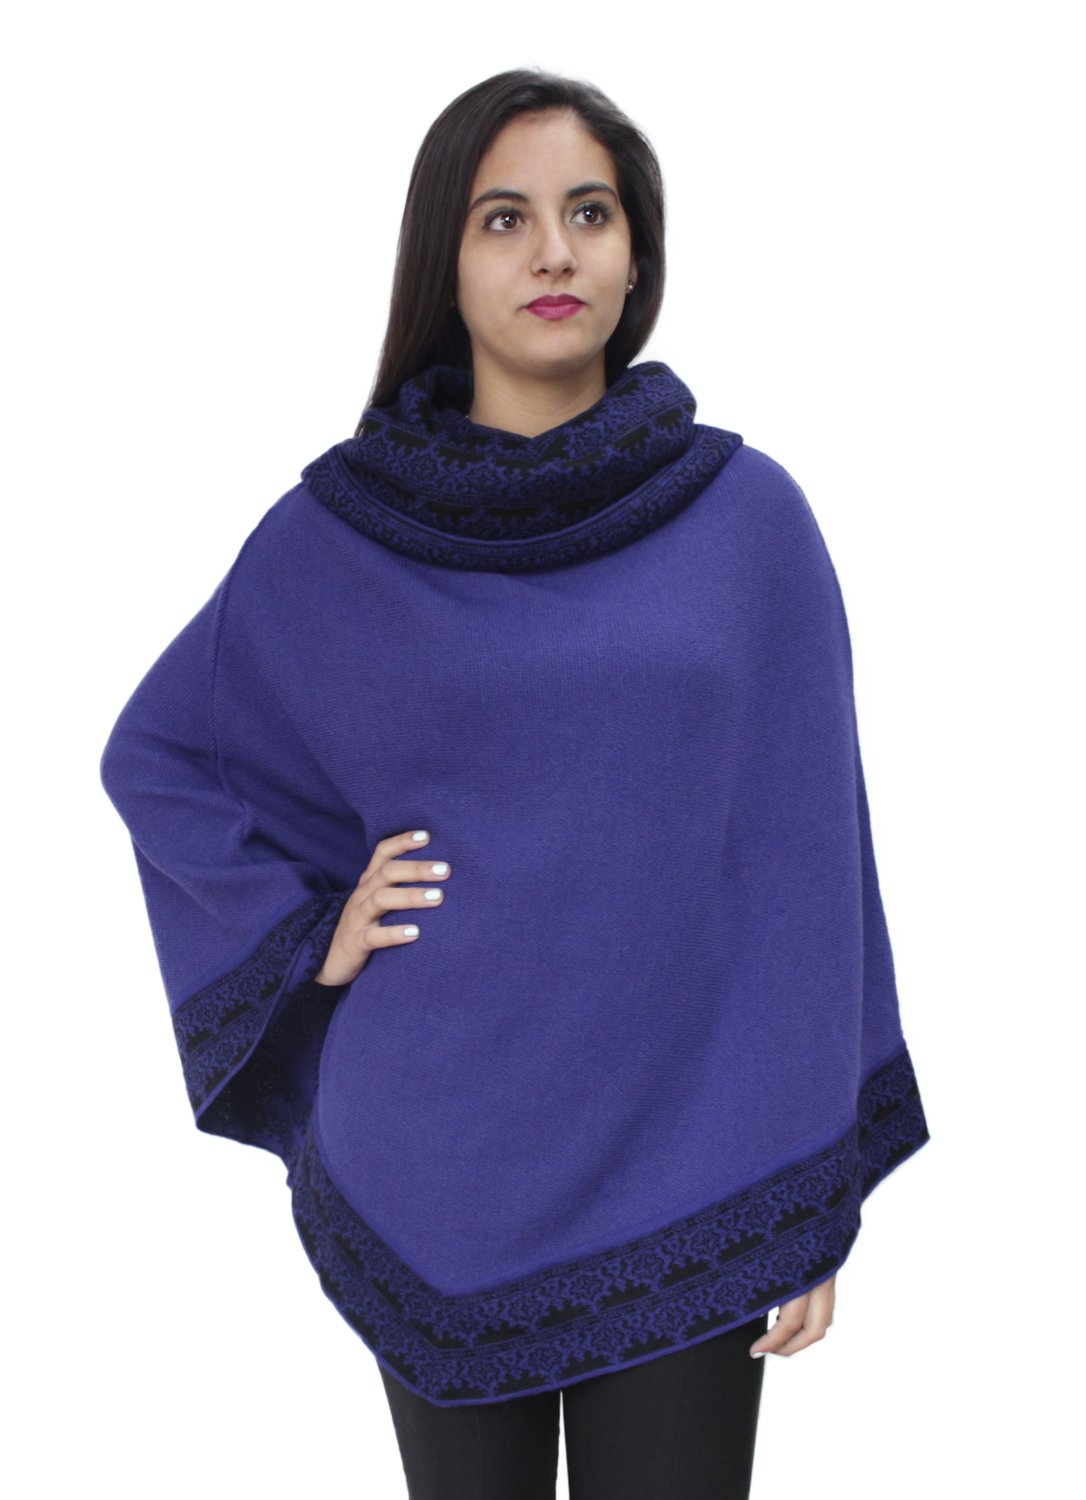 Women's Superfine 100% Baby Alpaca Wool Handmade Knit Premium Poncho One Size Extremely Soft And Warm (Purple)